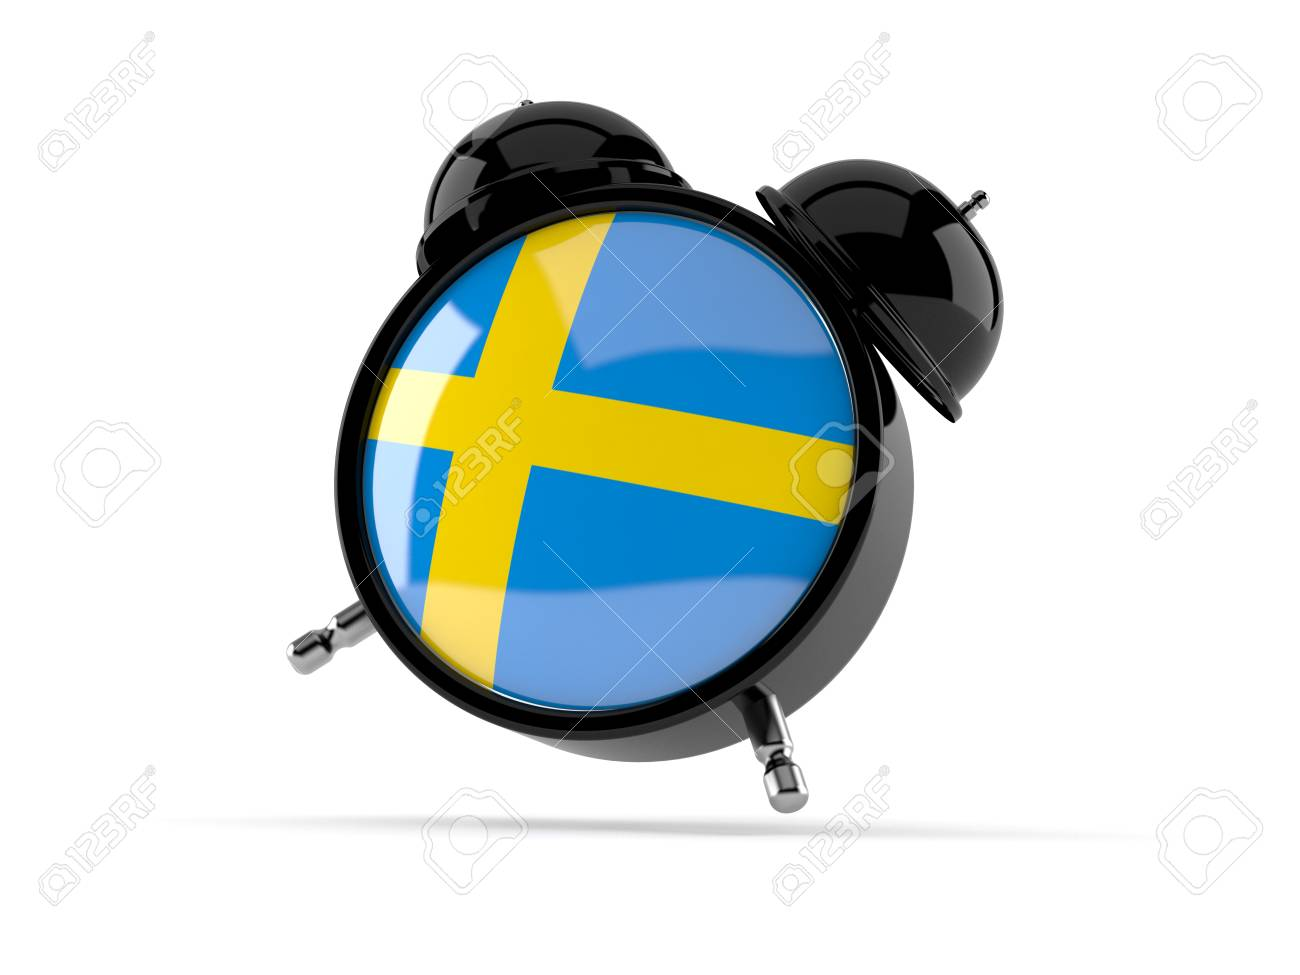 117041163-alarm-clock-with-swedish-flag-